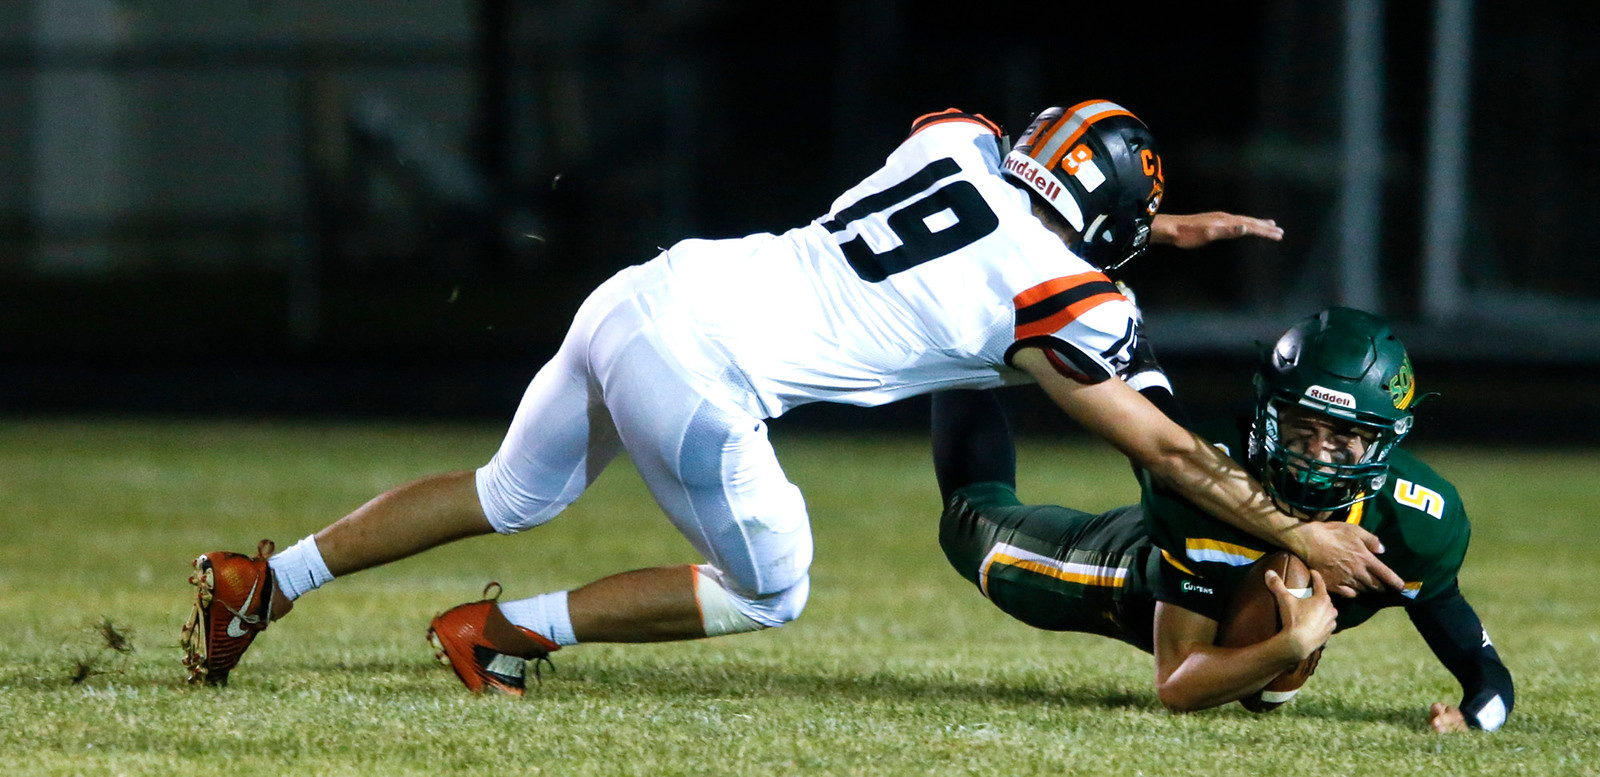 Quarterback Ian Gorken (5) from Crystal Lake South is sacked by Thomas Keene (19) from Crystal Lake Central during the second quarter of their game at Crystal Lake South High School on Friday, September 1, 2017 in Crystal Lake, Illinois. John Konstantaras photo for Shaw Media